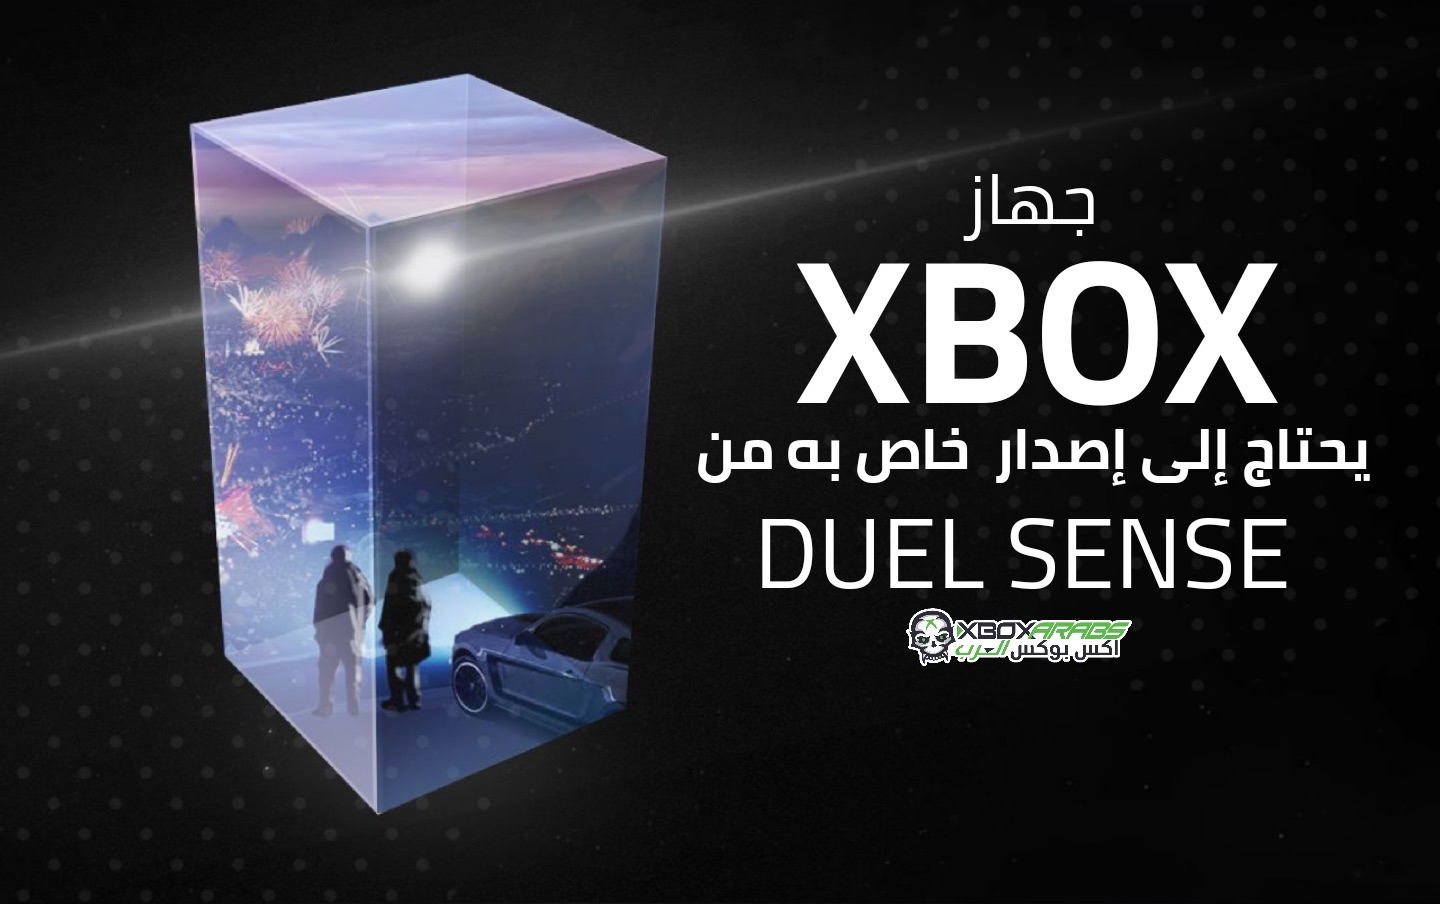 XBOX Need Its own Version of the Dule Sense